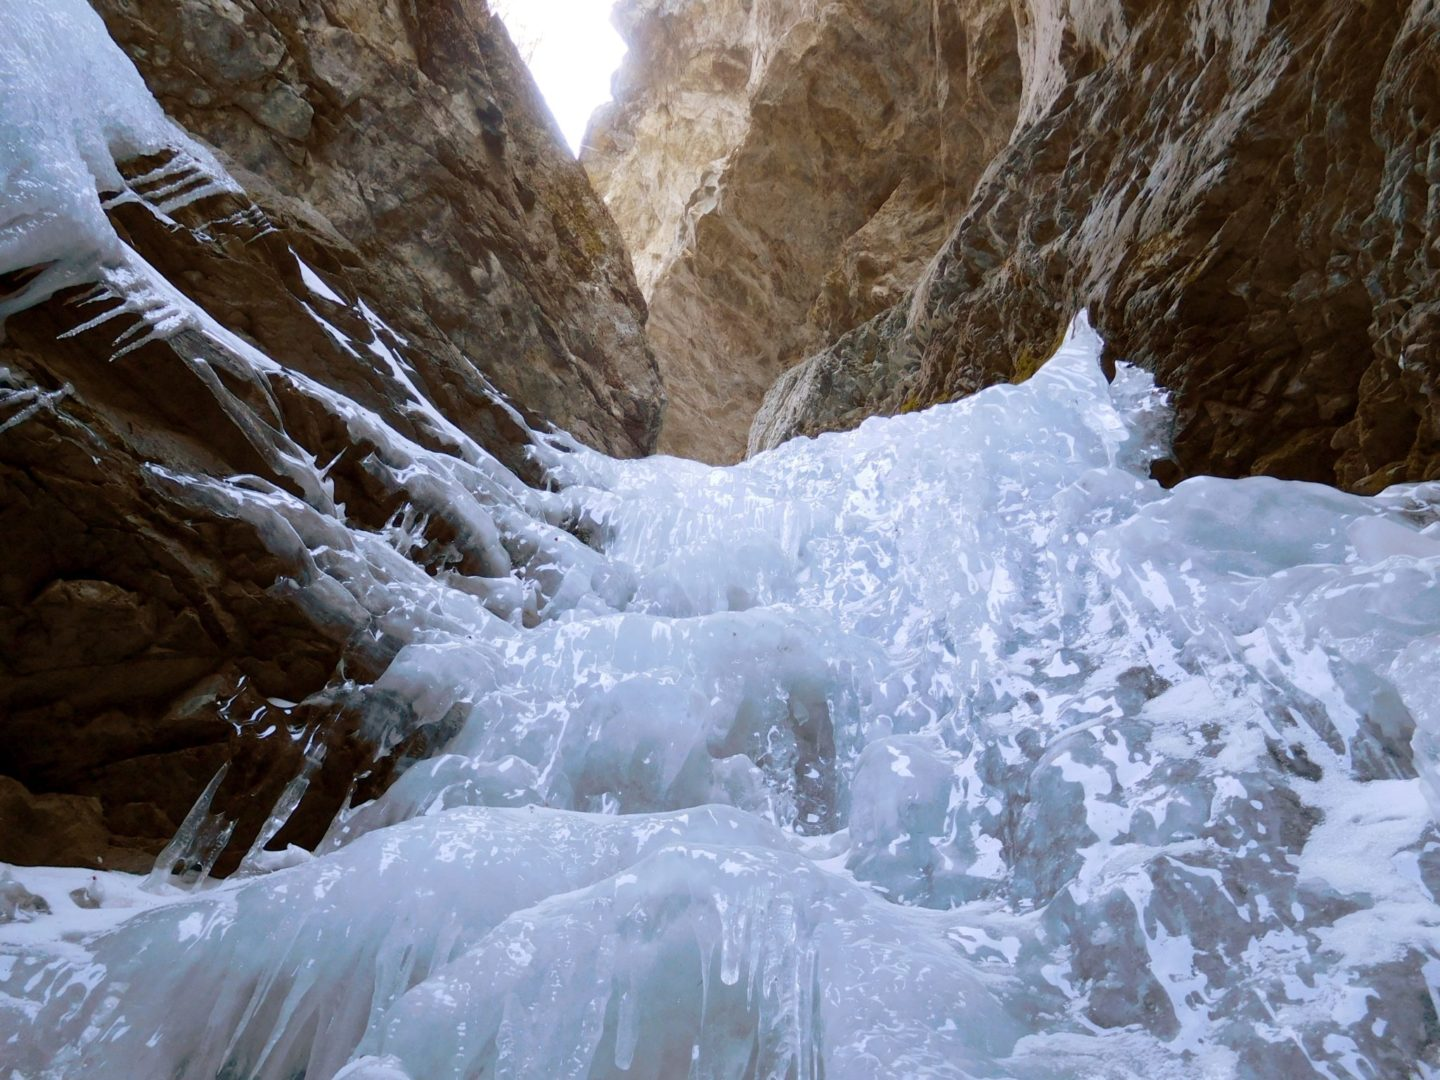 Looking up the frozen falls you can hear water still running underneath